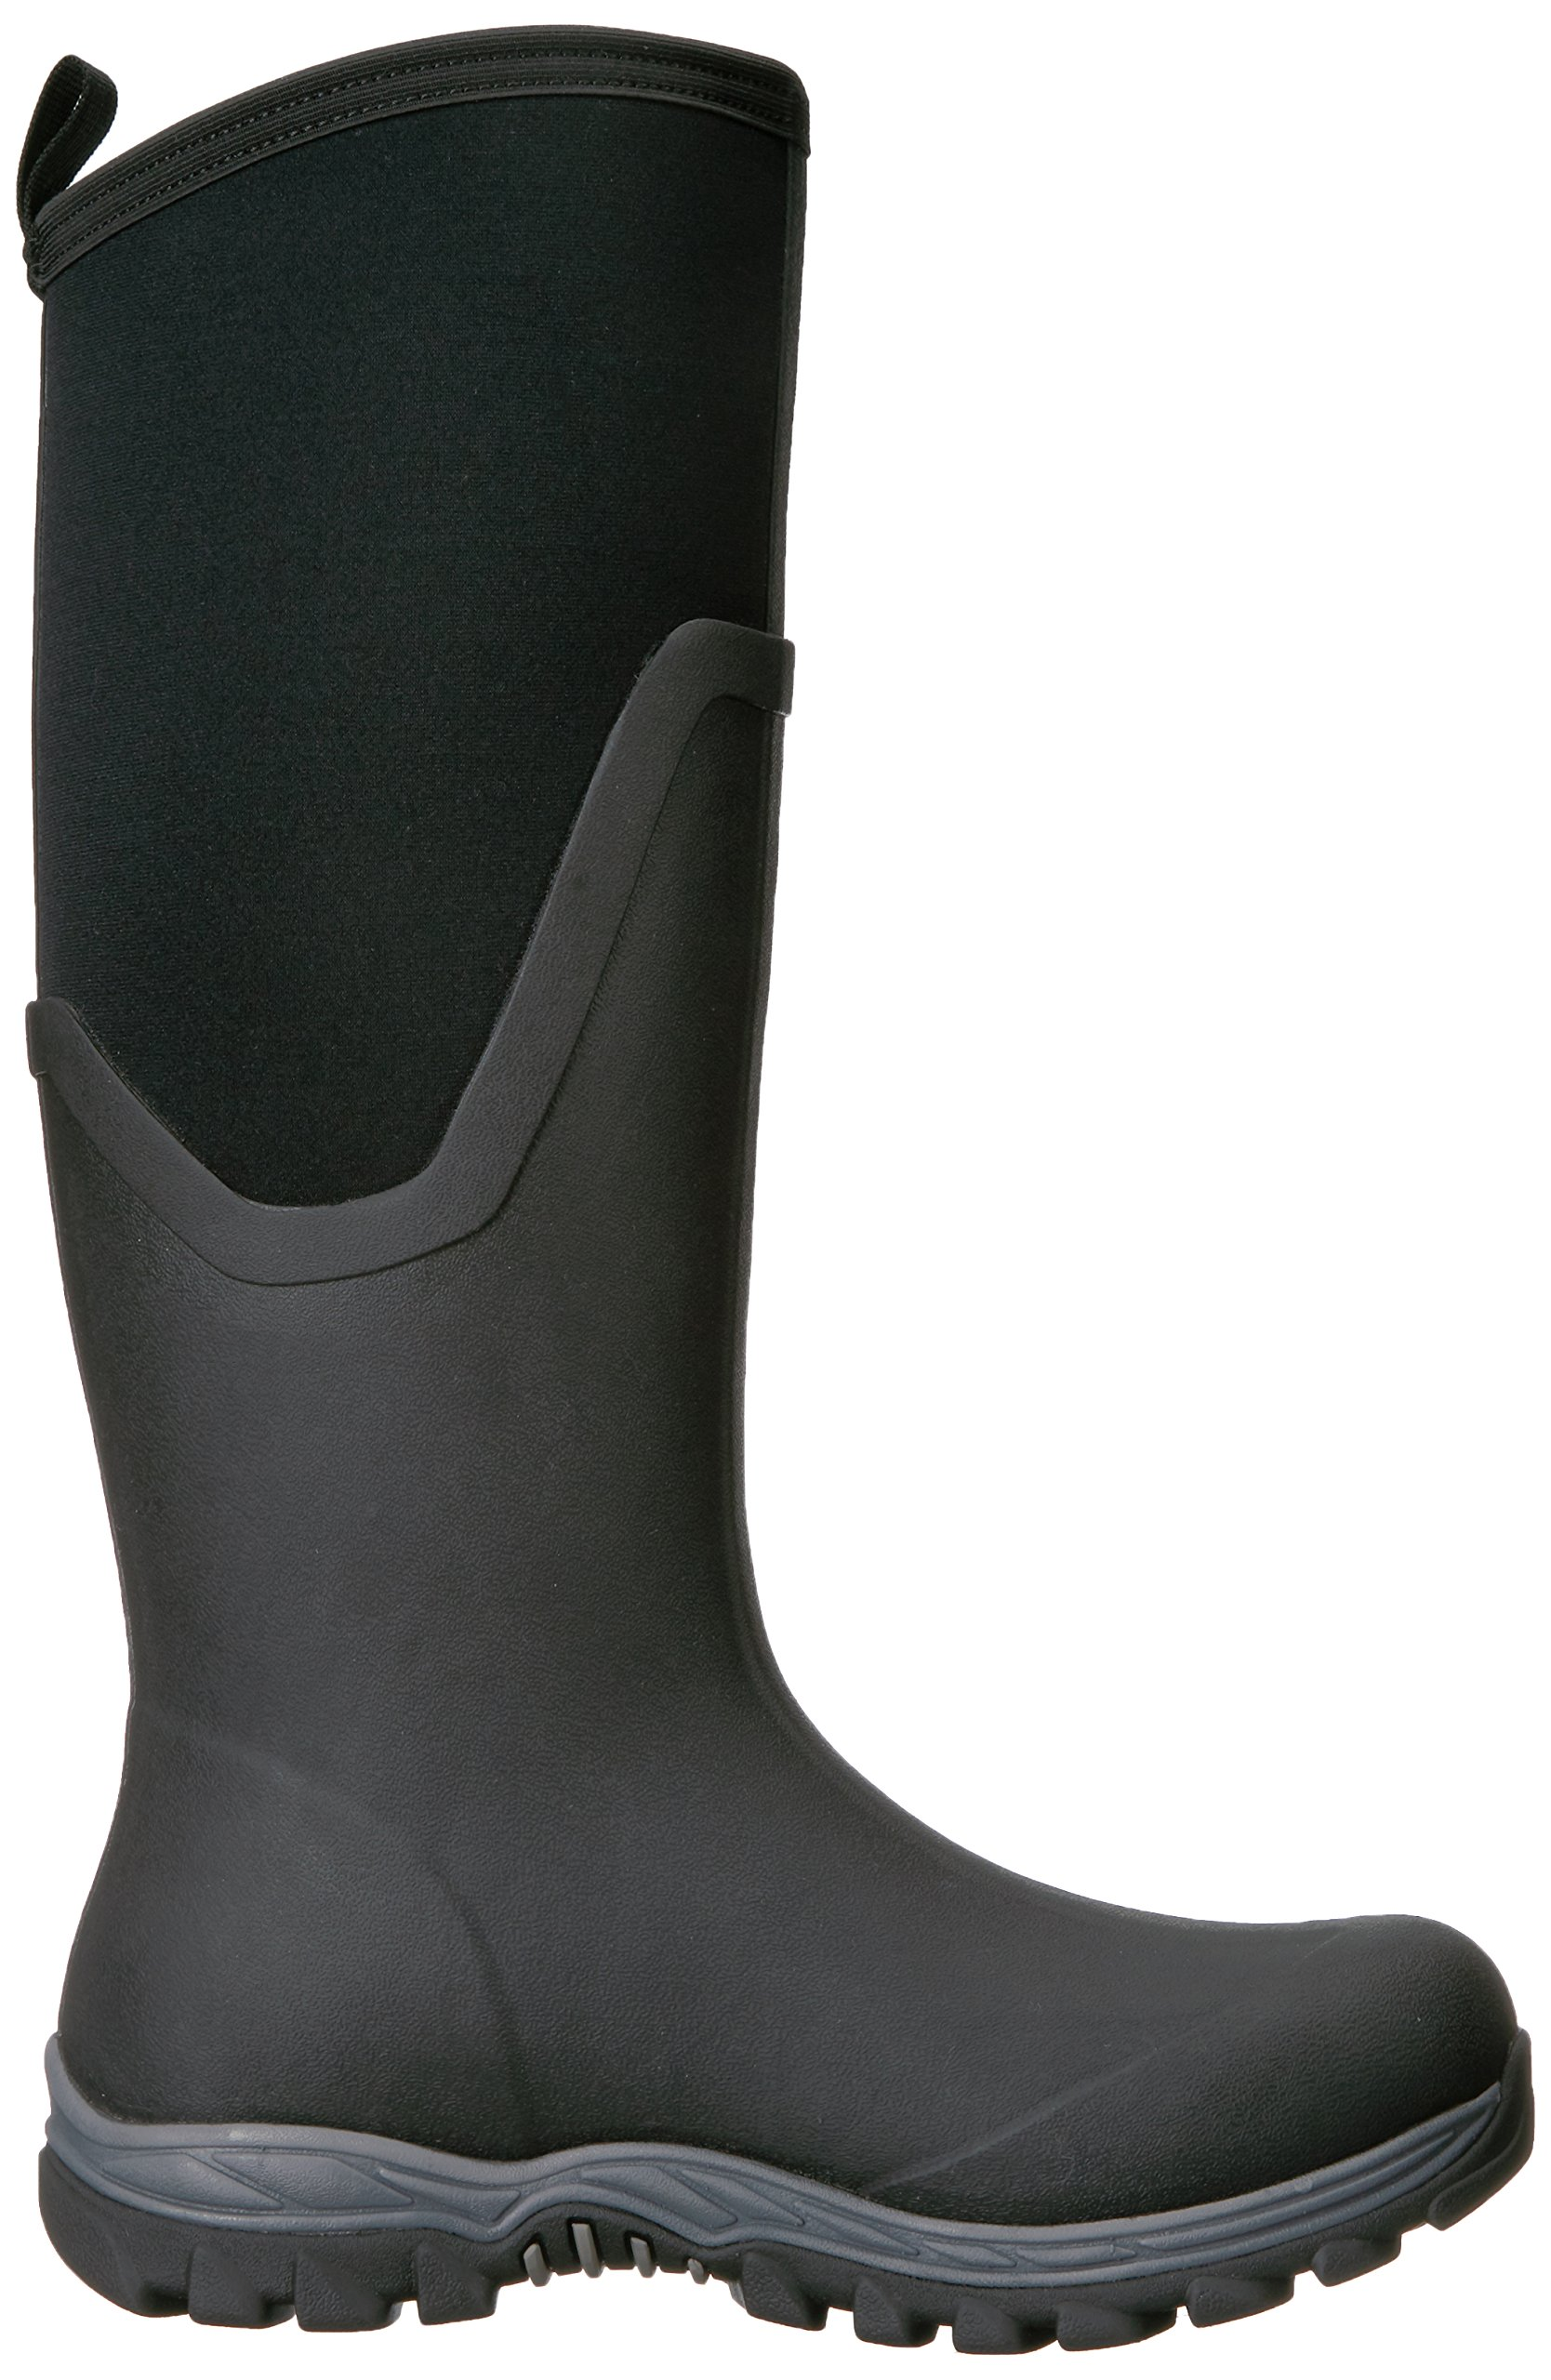 Muck Boot Women's Arctic Sport II Tall Snow Boot, Black, 7 US/7 M US by Muck Boot (Image #7)